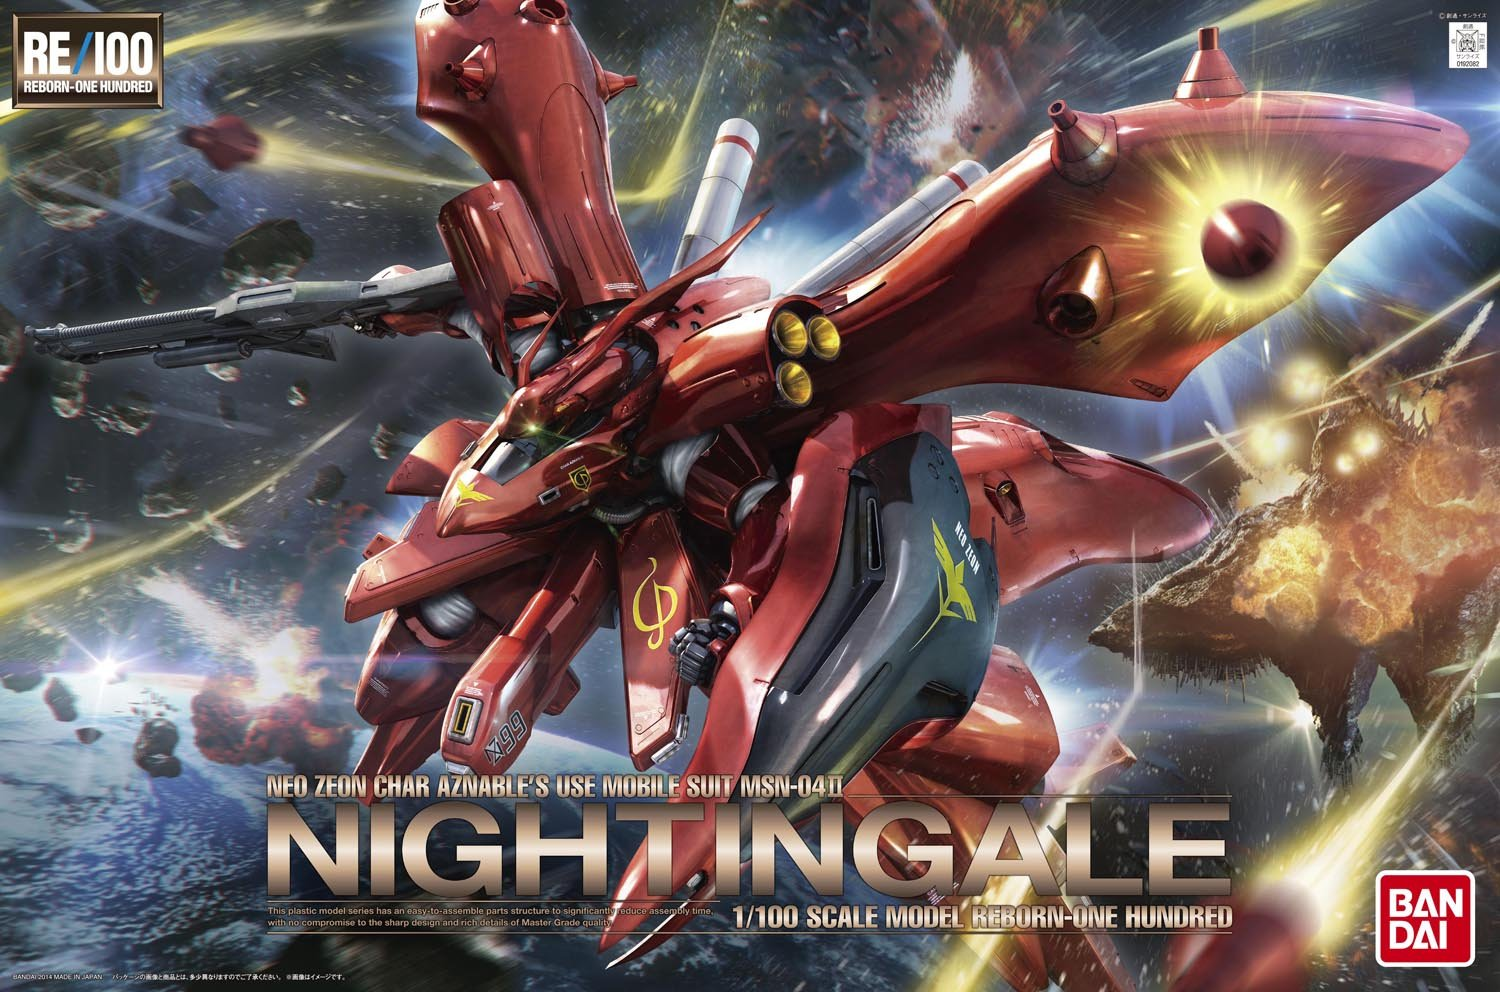 RE/100 Nightingale